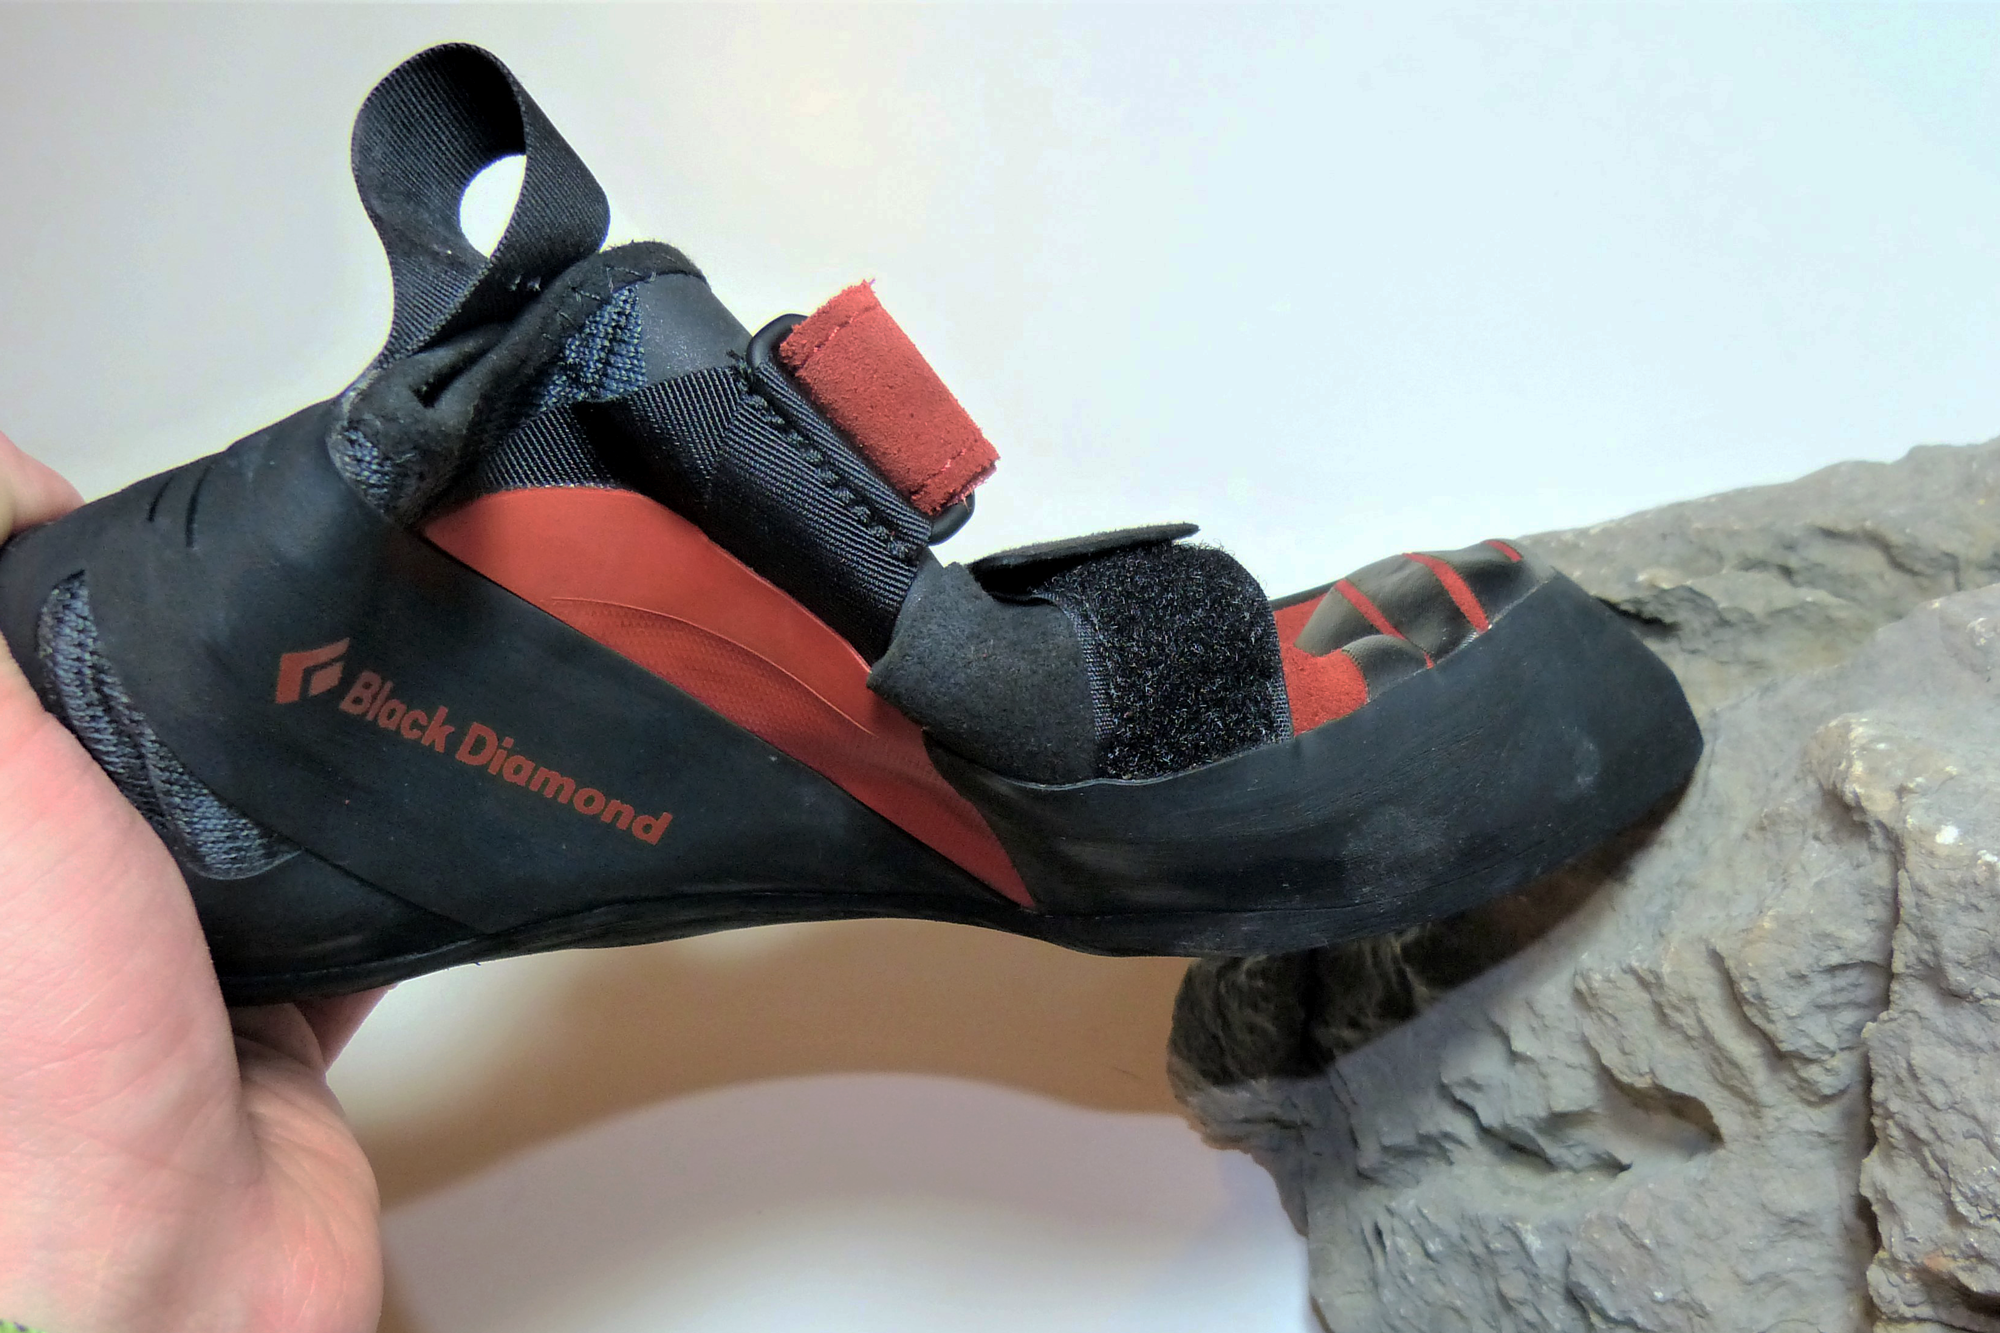 Klettergurt Black Diamond Solution : Black diamond solution klettergurt test